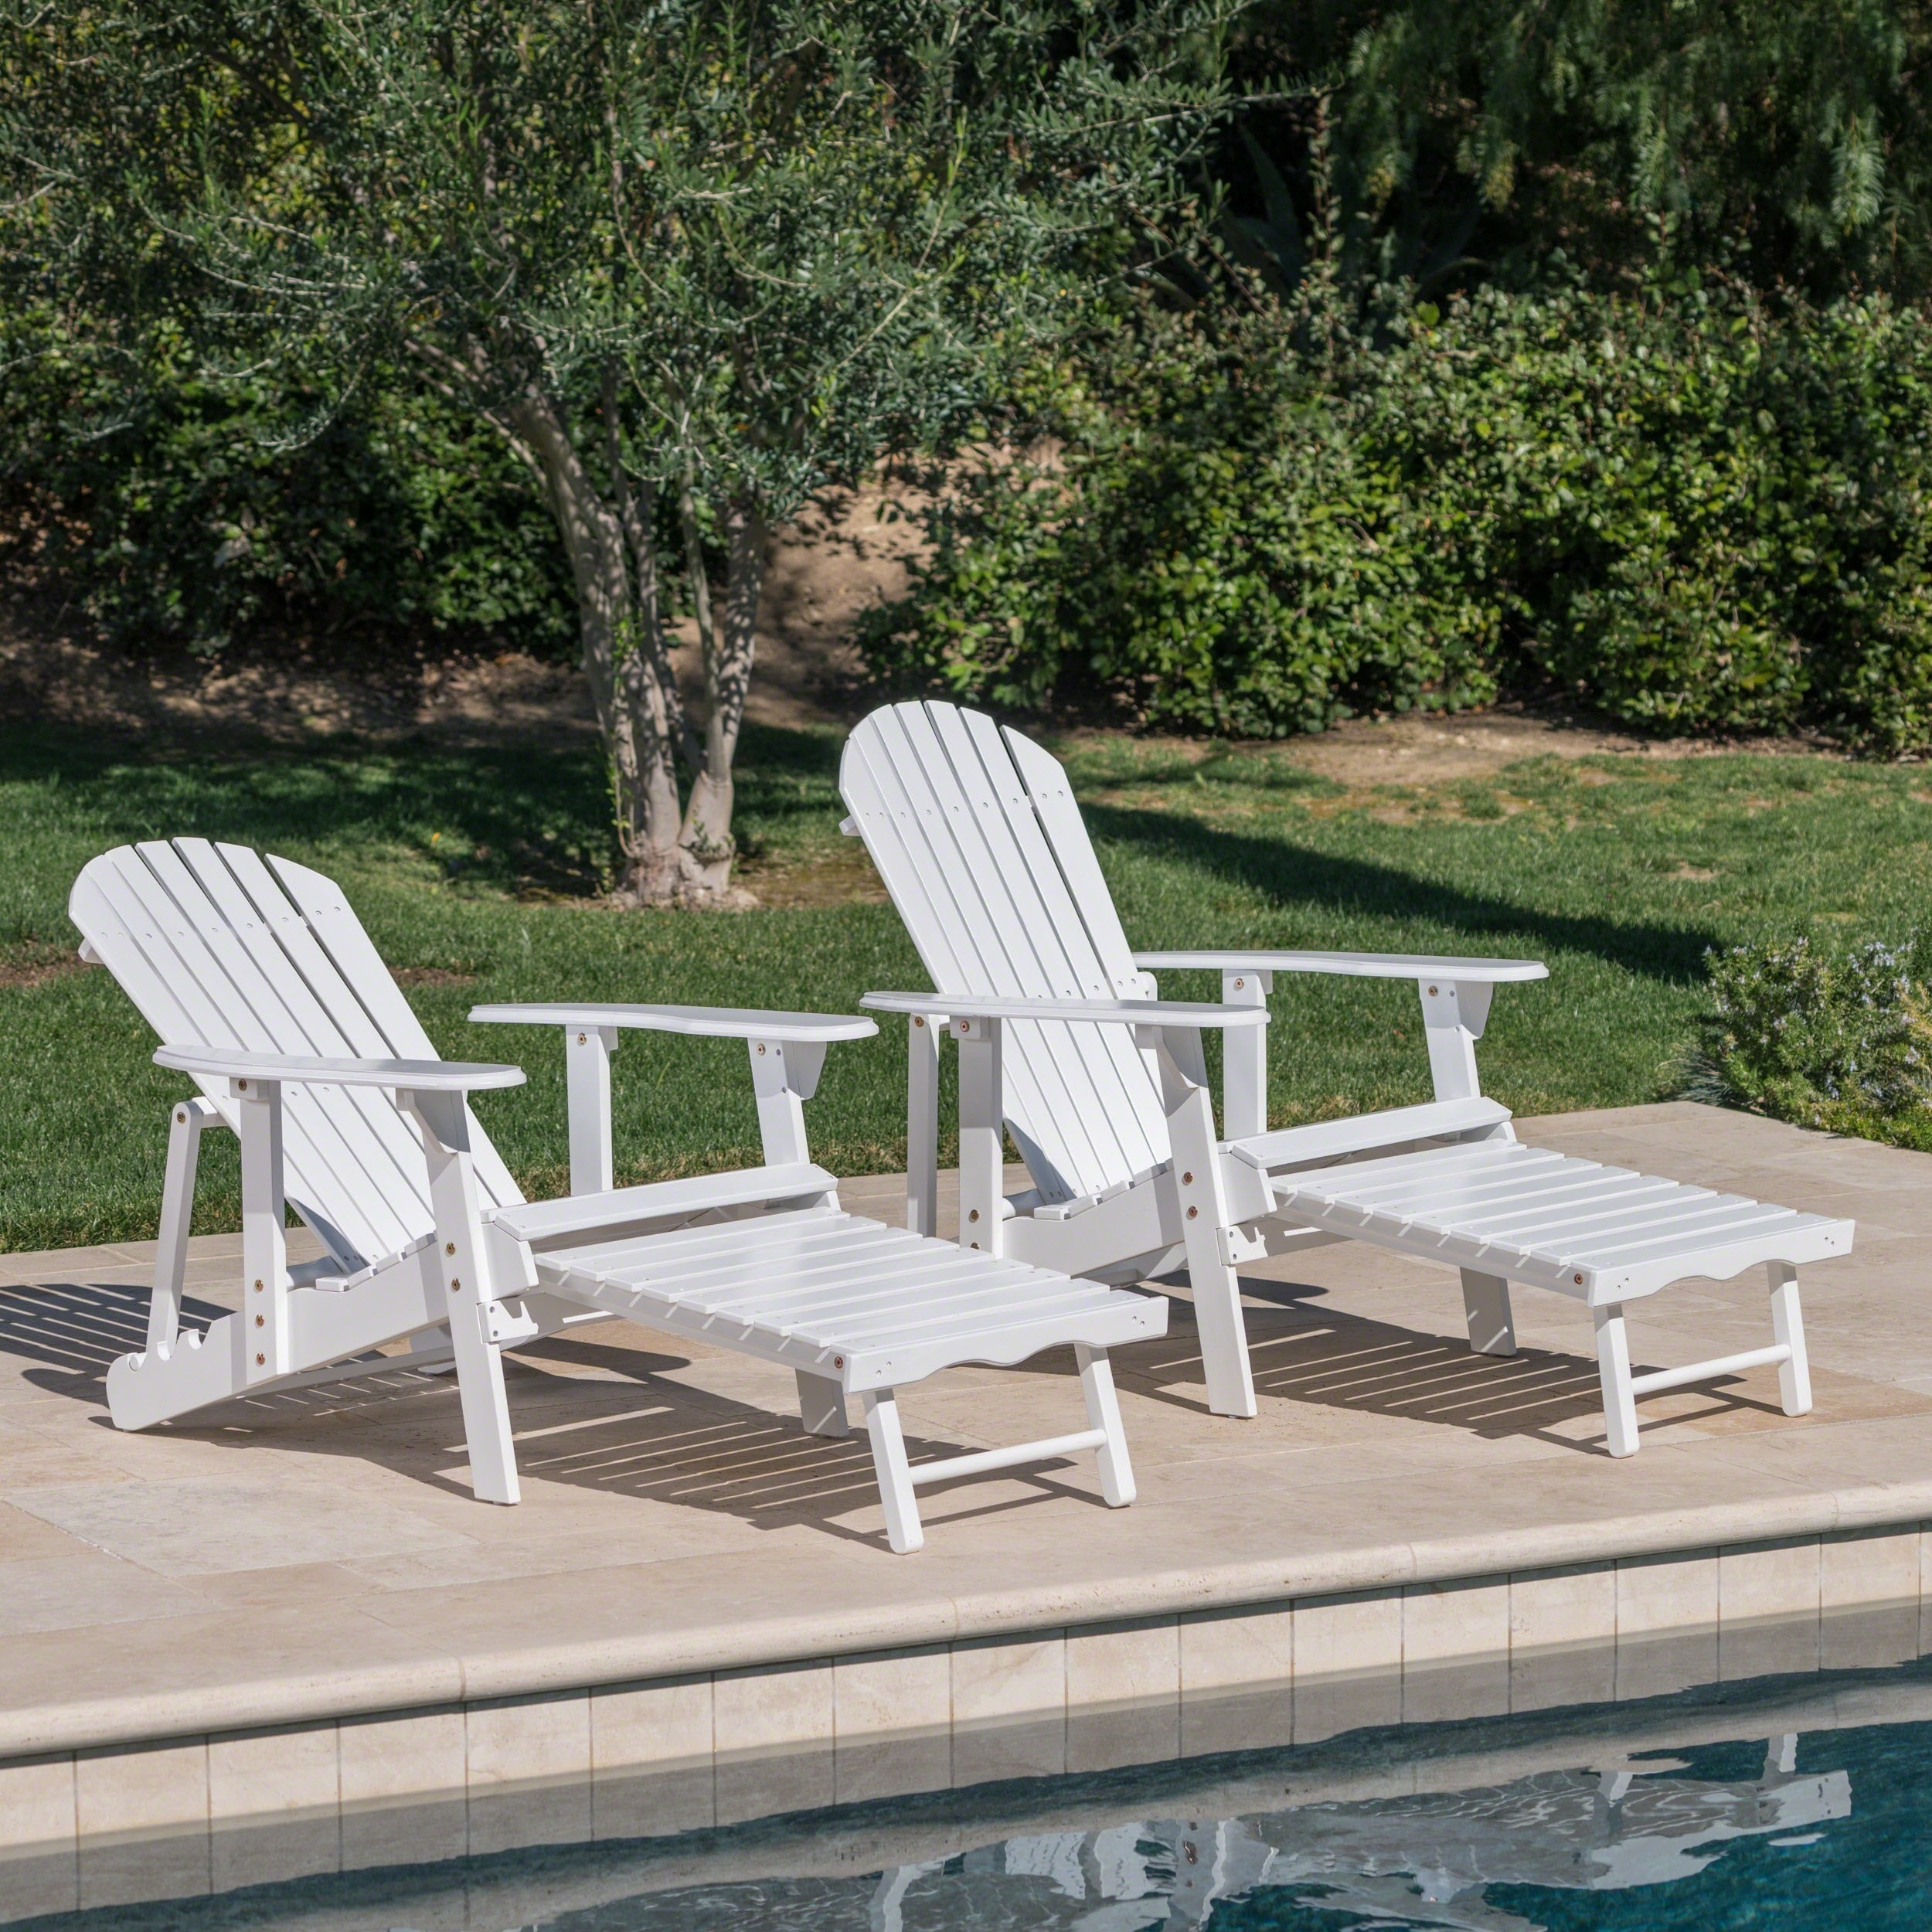 Hayle Outdoor Reclining Wood Adirondack Chair With Footrest Set Of 2 By Christopher Knight Home